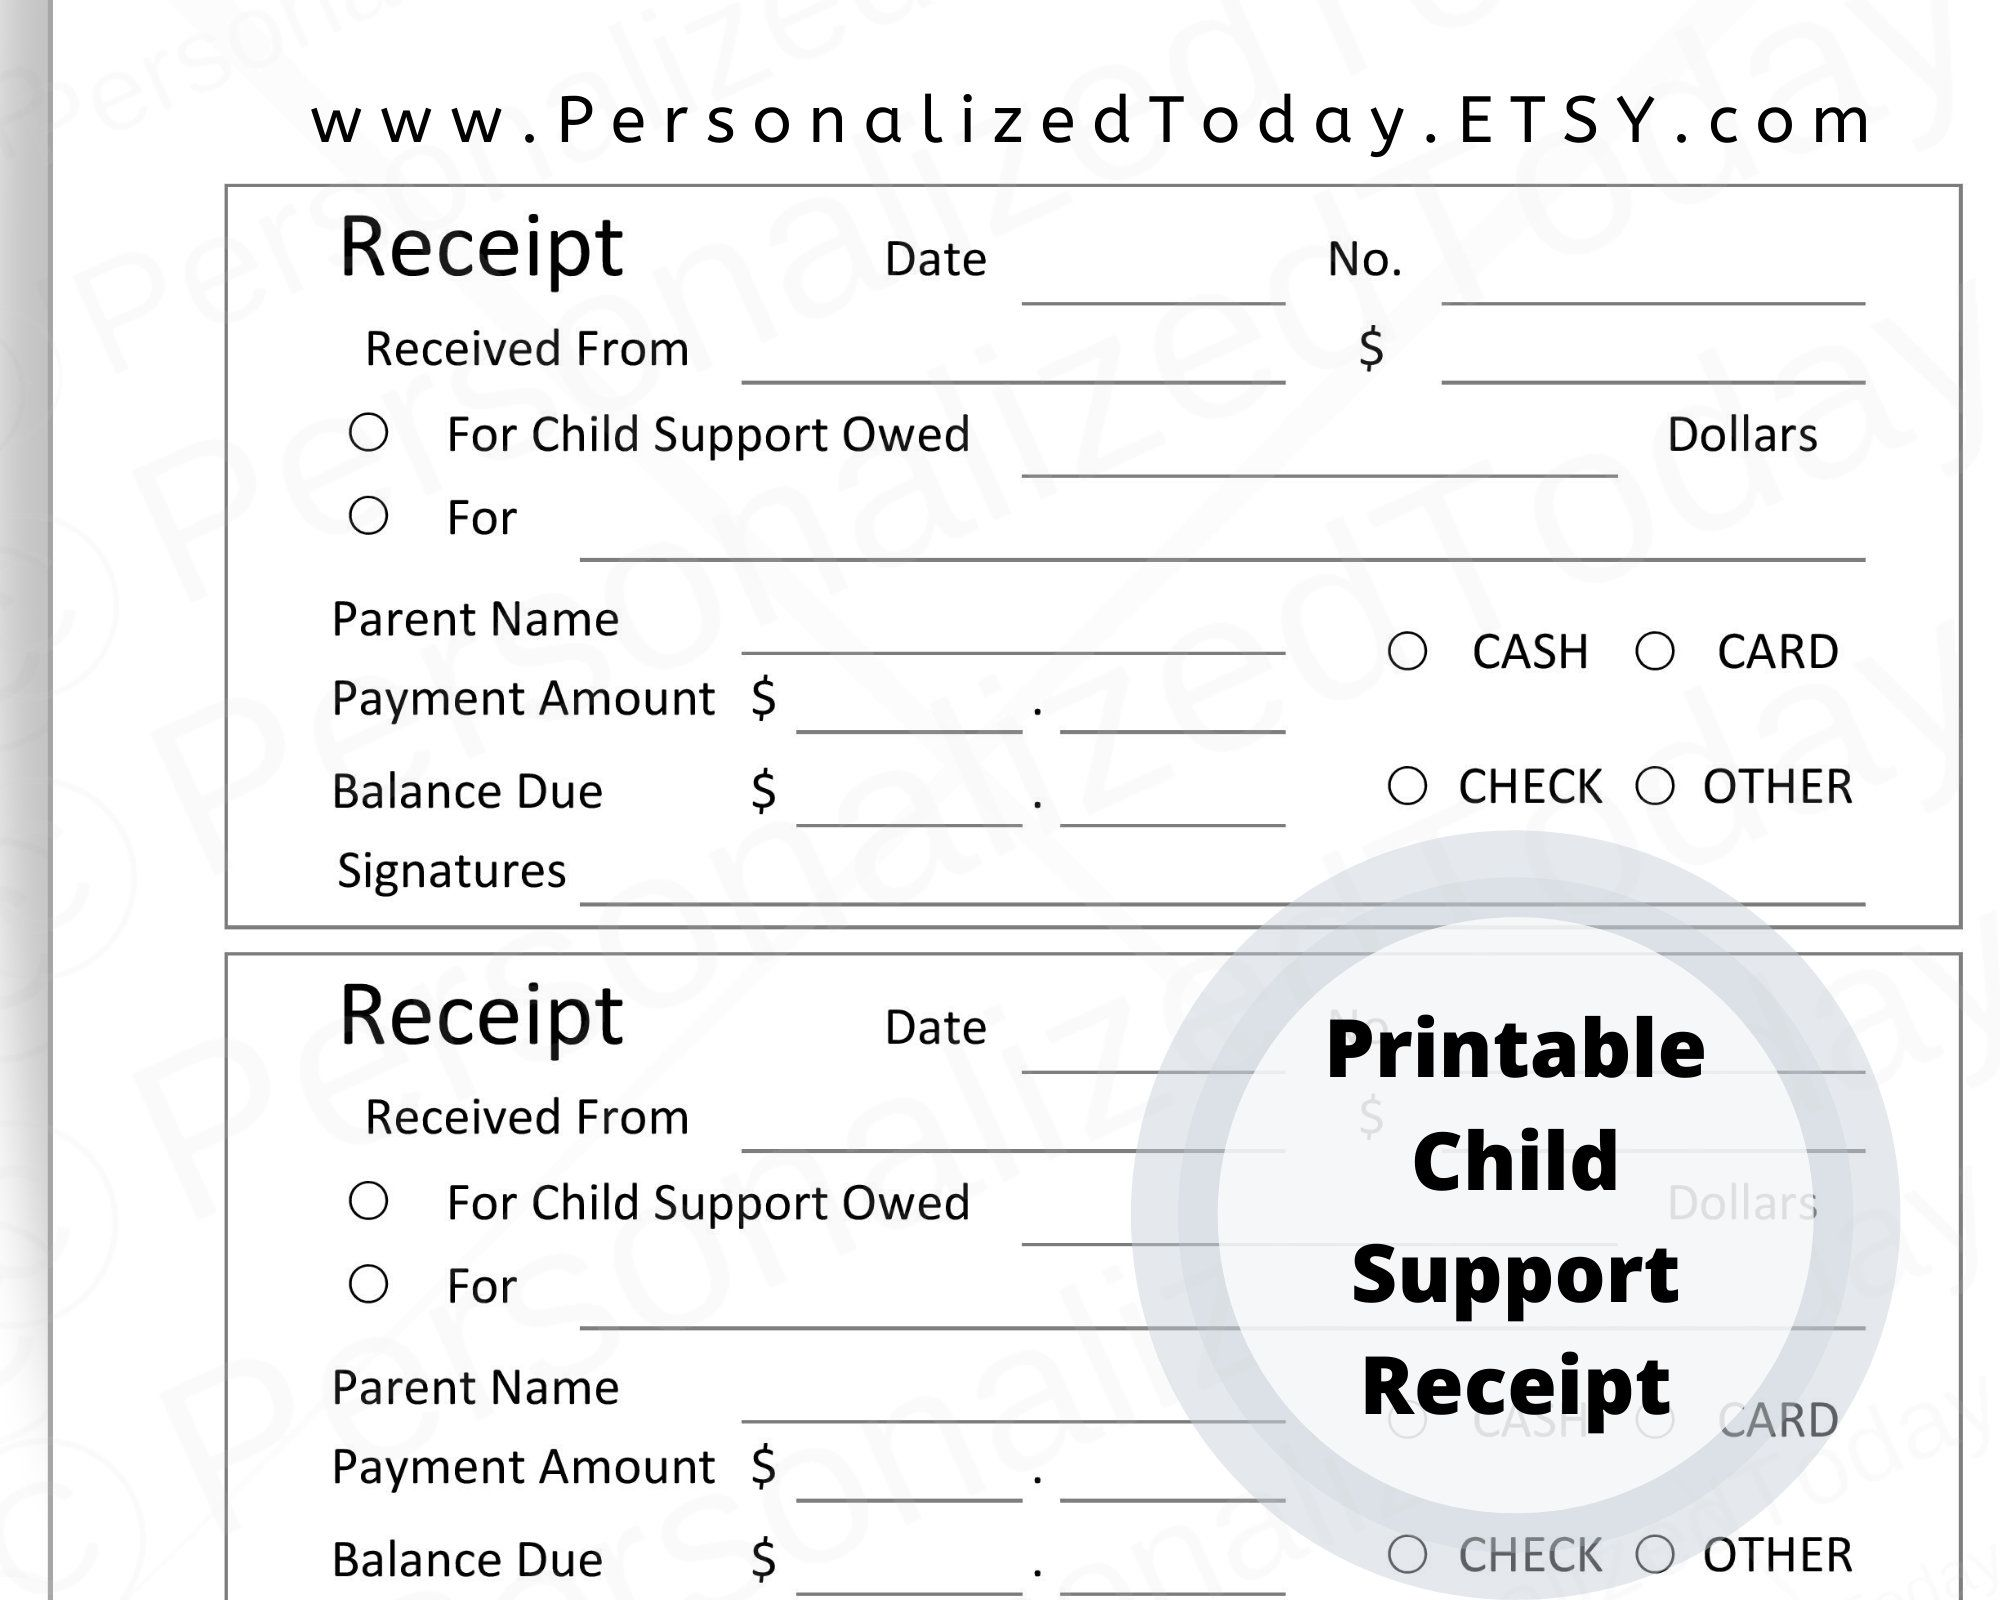 Printable Child Support Receipt For Diy Receipt Book Digital Etsy Child Support Supportive Child Support Payments